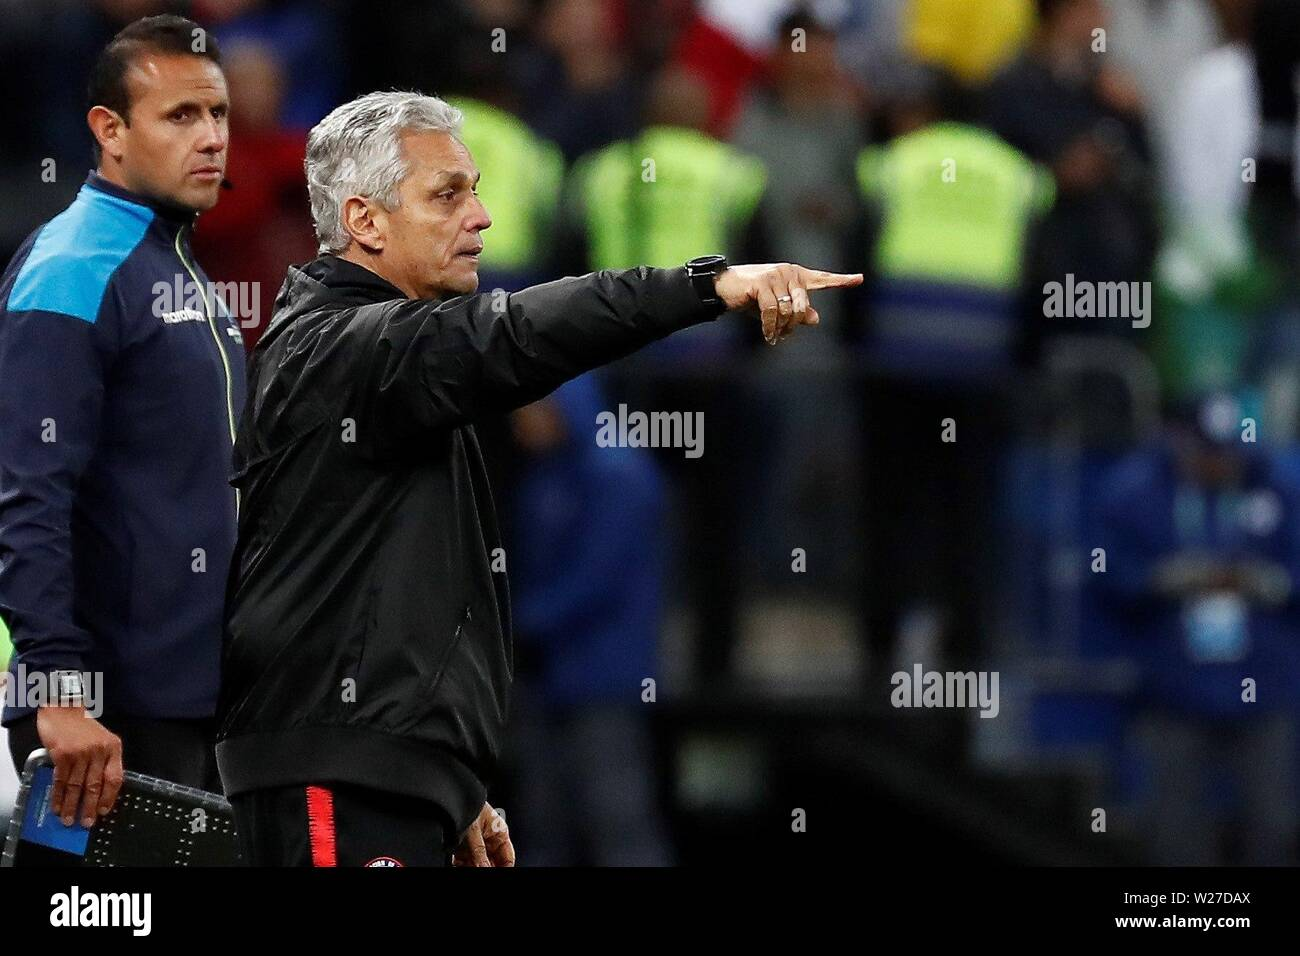 Sao Paulo, Brazil. 06th July, 2019. Chile's head coach Reinaldo Rueda reacts, during the Copa America 2019 3rd place soccer match between Argentina and Chile, at Arena Corinthians Stadium in Sao Paulo, Brazil, 6 July 2019. Credit: Sebastiao Moreira/EFE/Alamy Live News - Stock Image